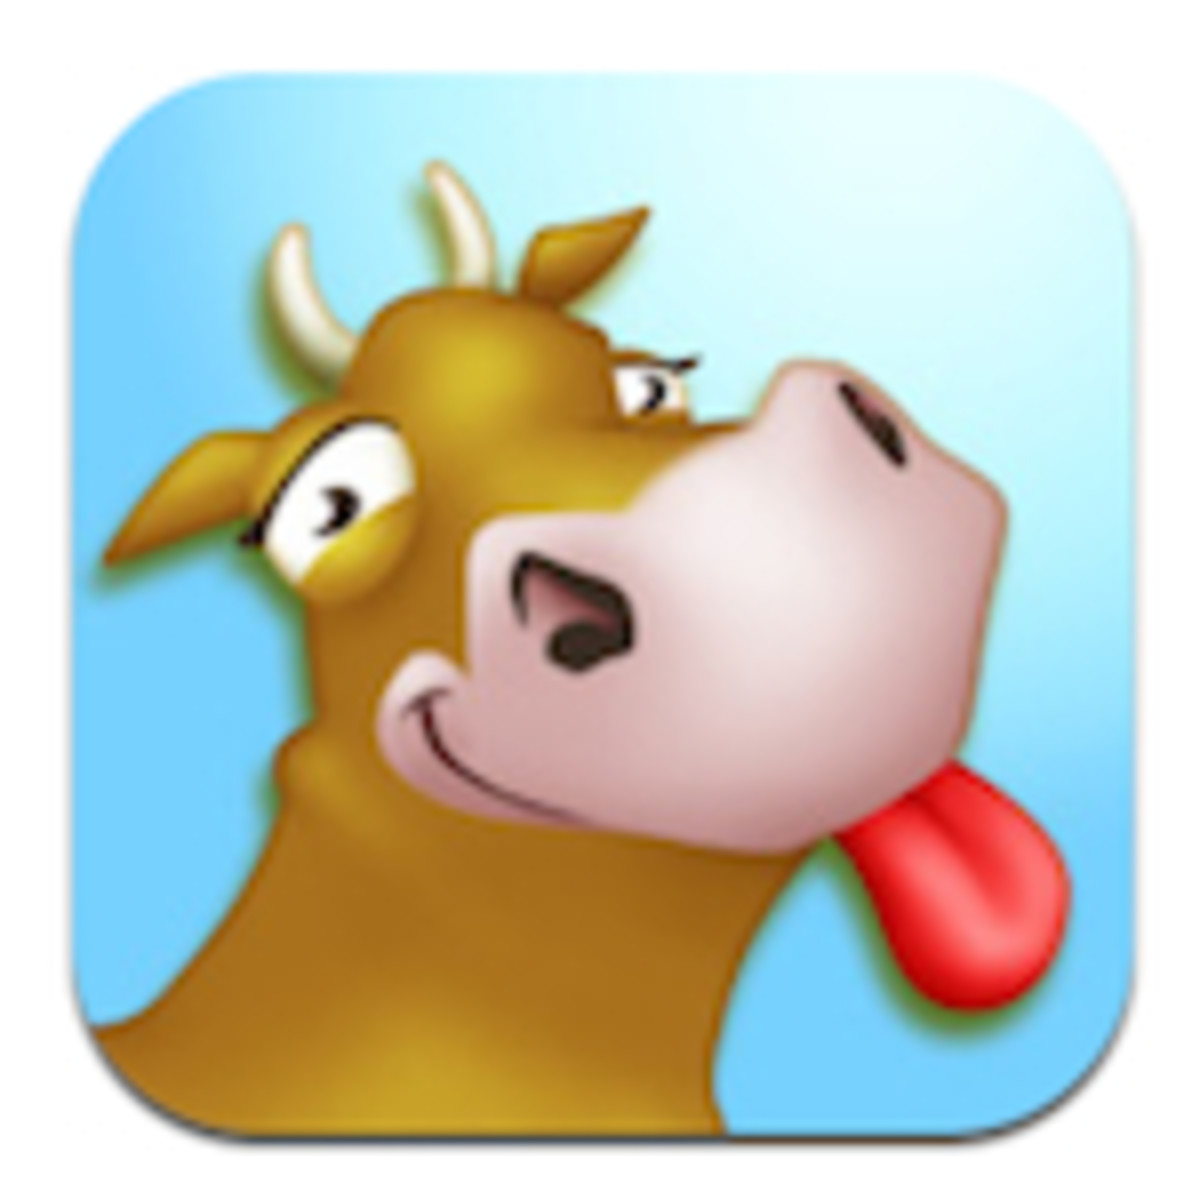 Game Addictions - My Addiction to Hay Day